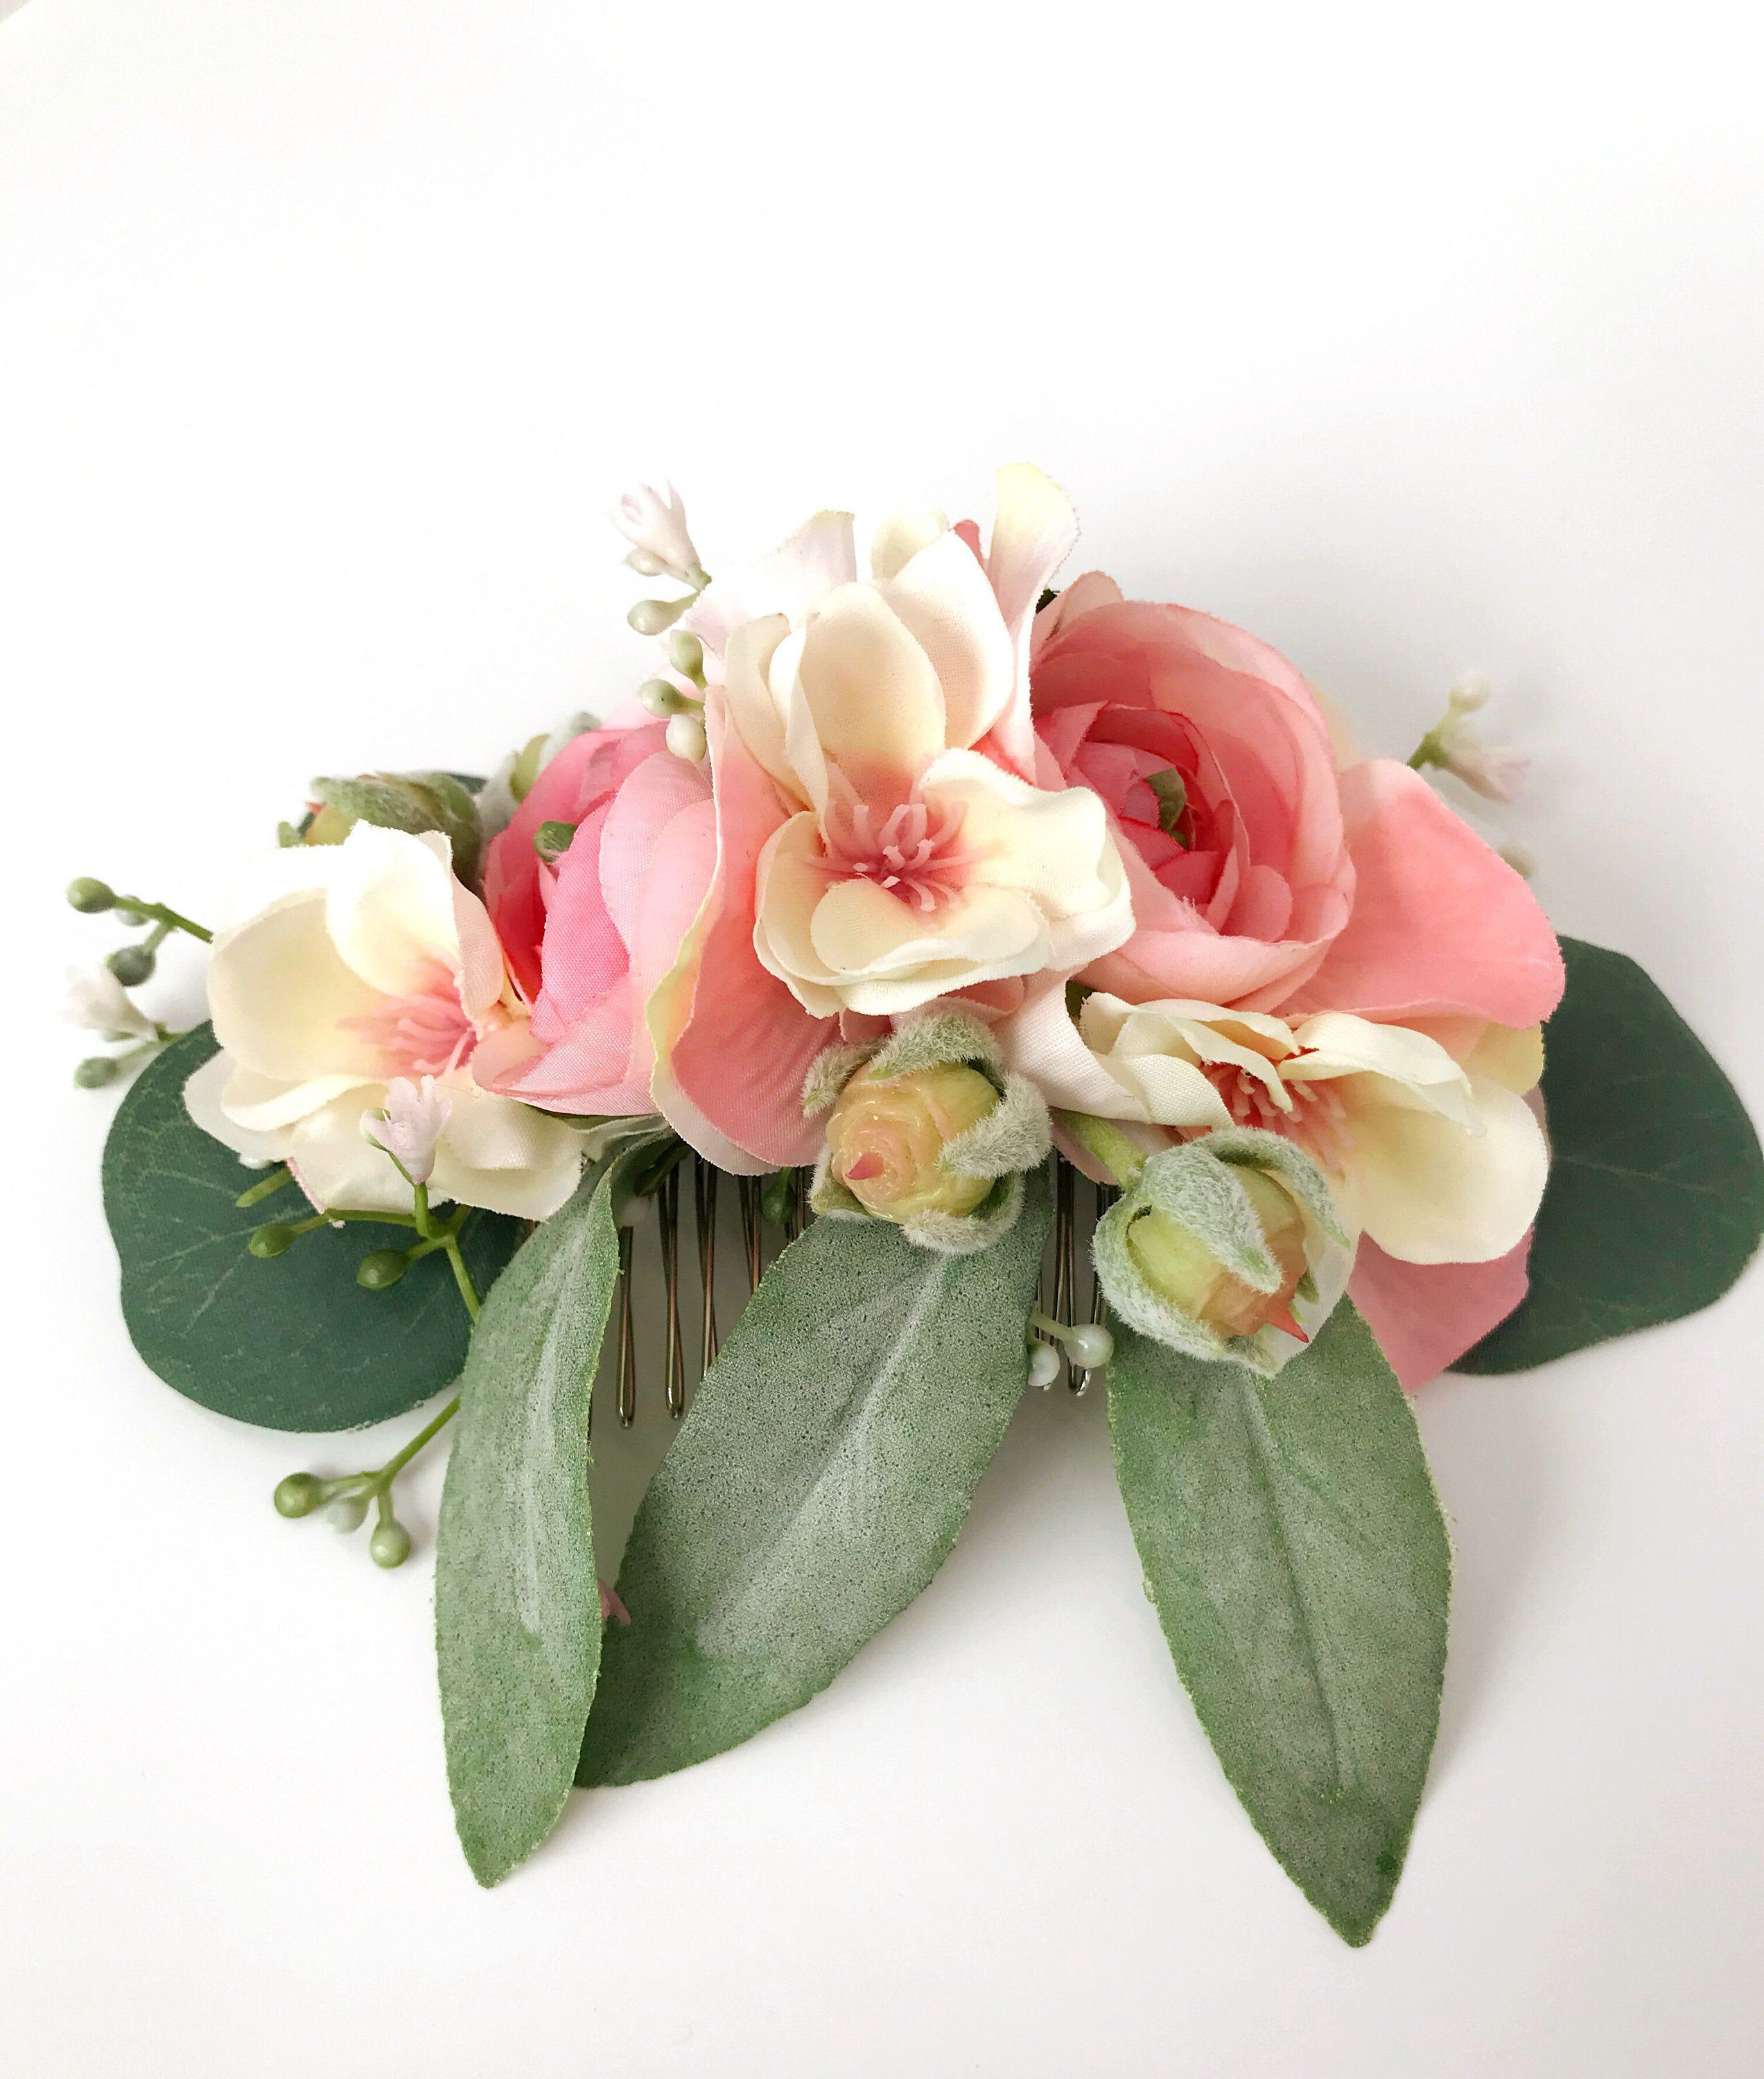 Flower hair comb Pastel flower Bridal Spring bridal Flower comb Decorative hair comb Flower crown Silk flowers Floral hair comb Special day